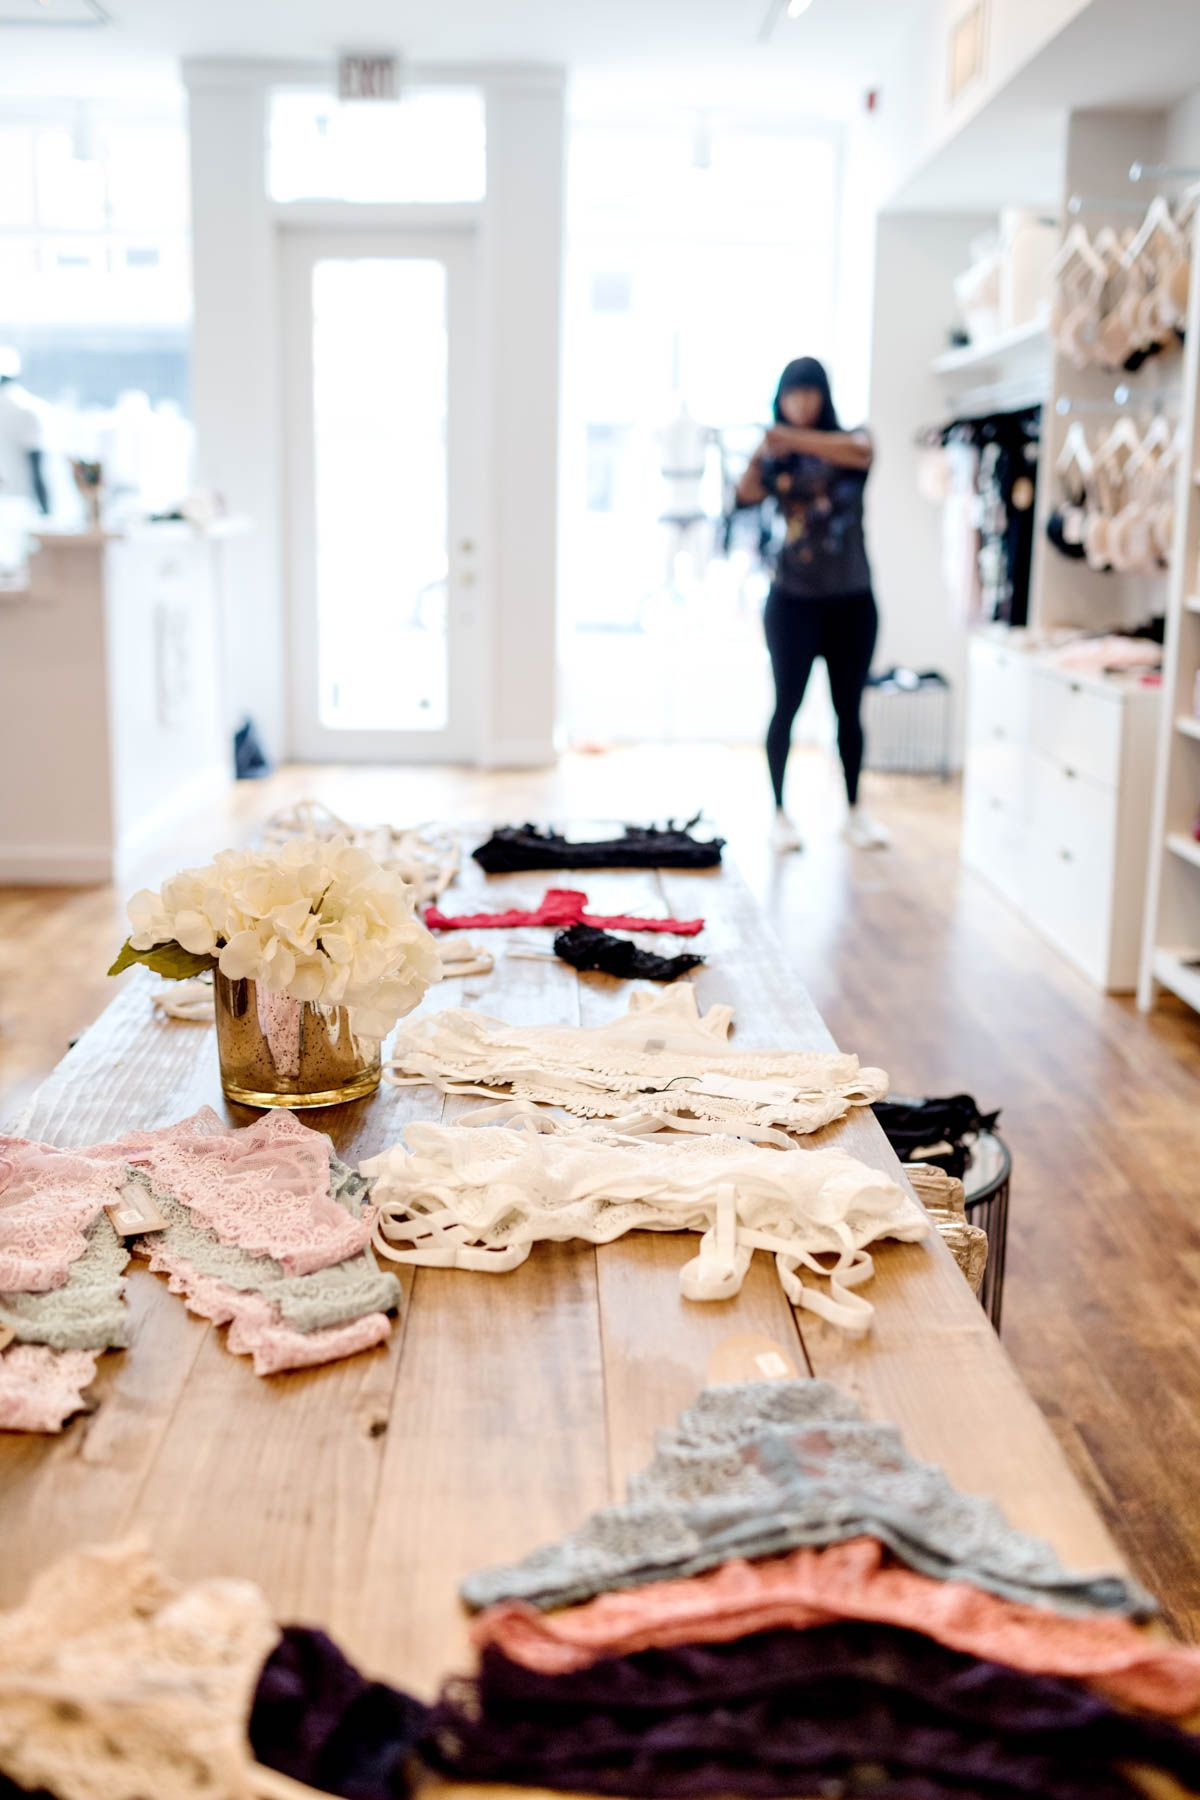 6a6c94bdce5f6 Looking for the lingerie stores in Philadelphia  The best lingerie store   Stop into Expect Lace